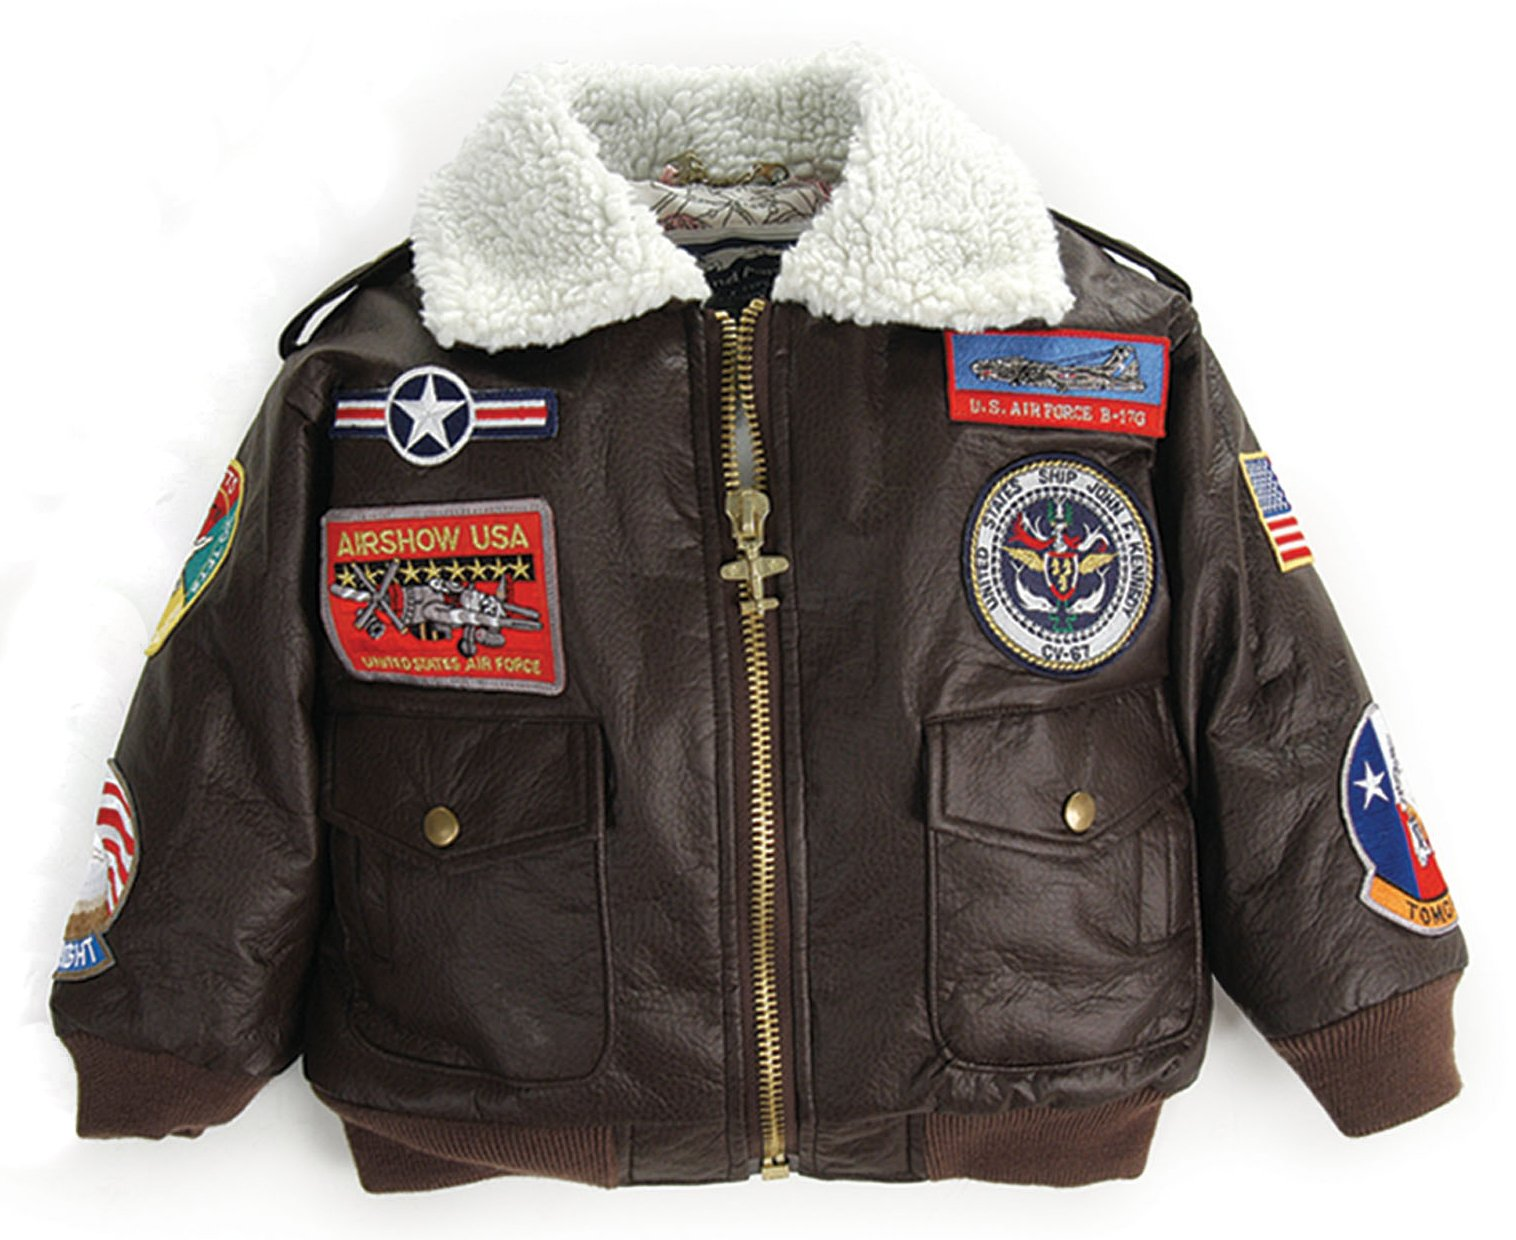 Up and Away Boys' A-2 Bomber Jacket 24 Months Brown by Up and Away